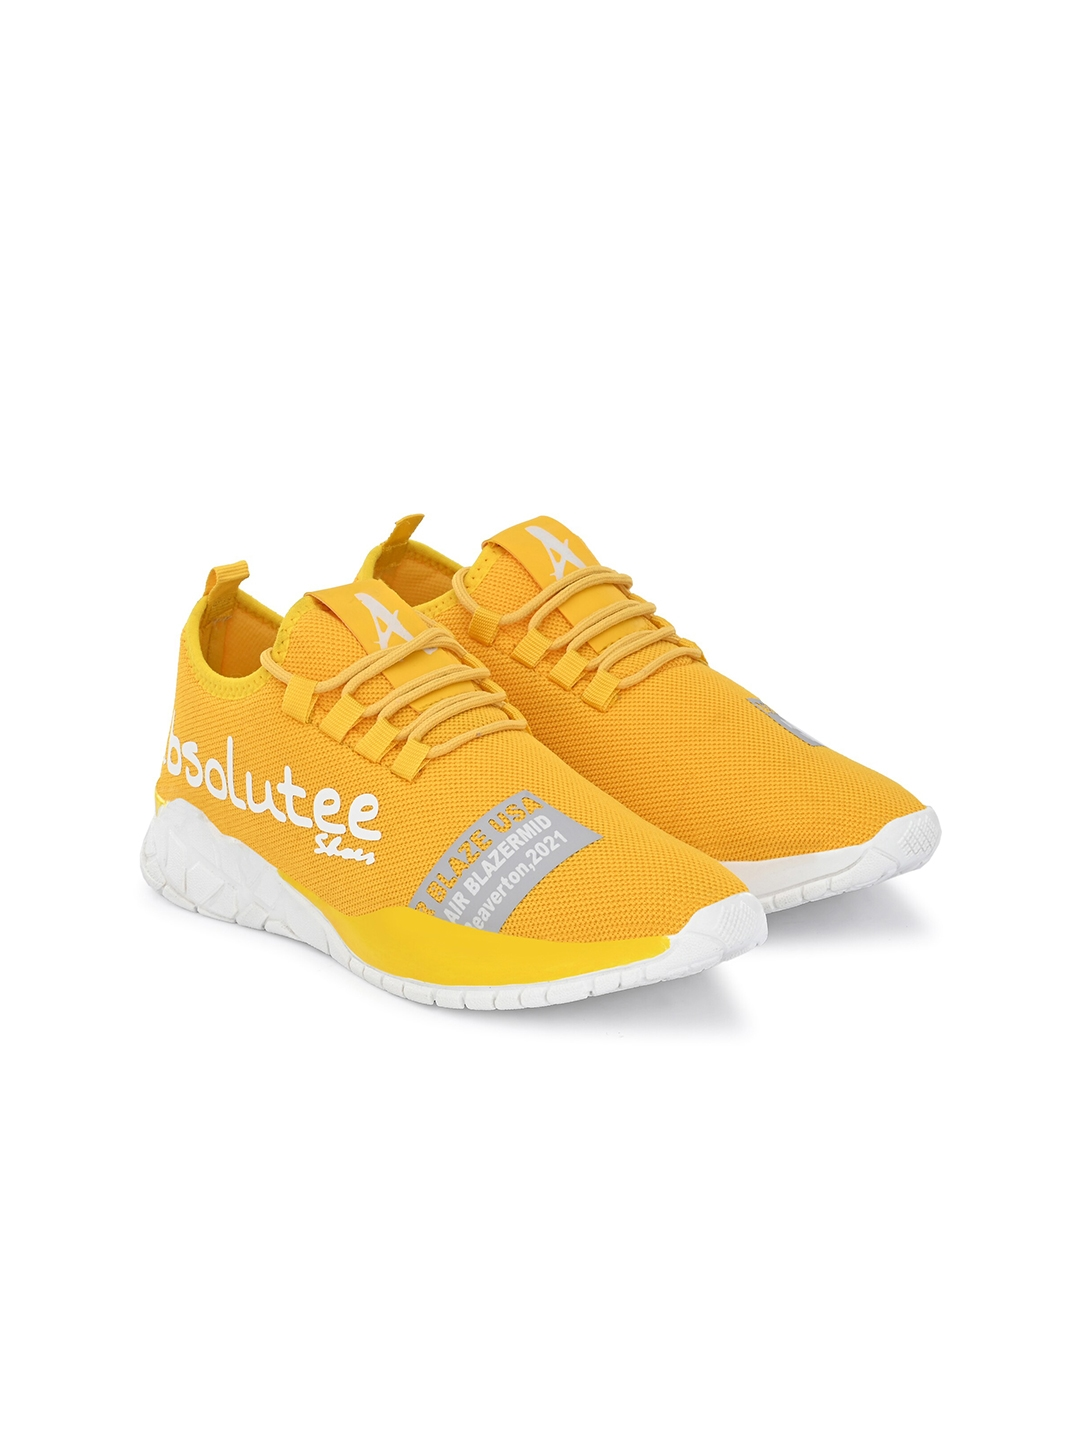 Absolutee Shoes Men Yellow Mesh Running Shoes